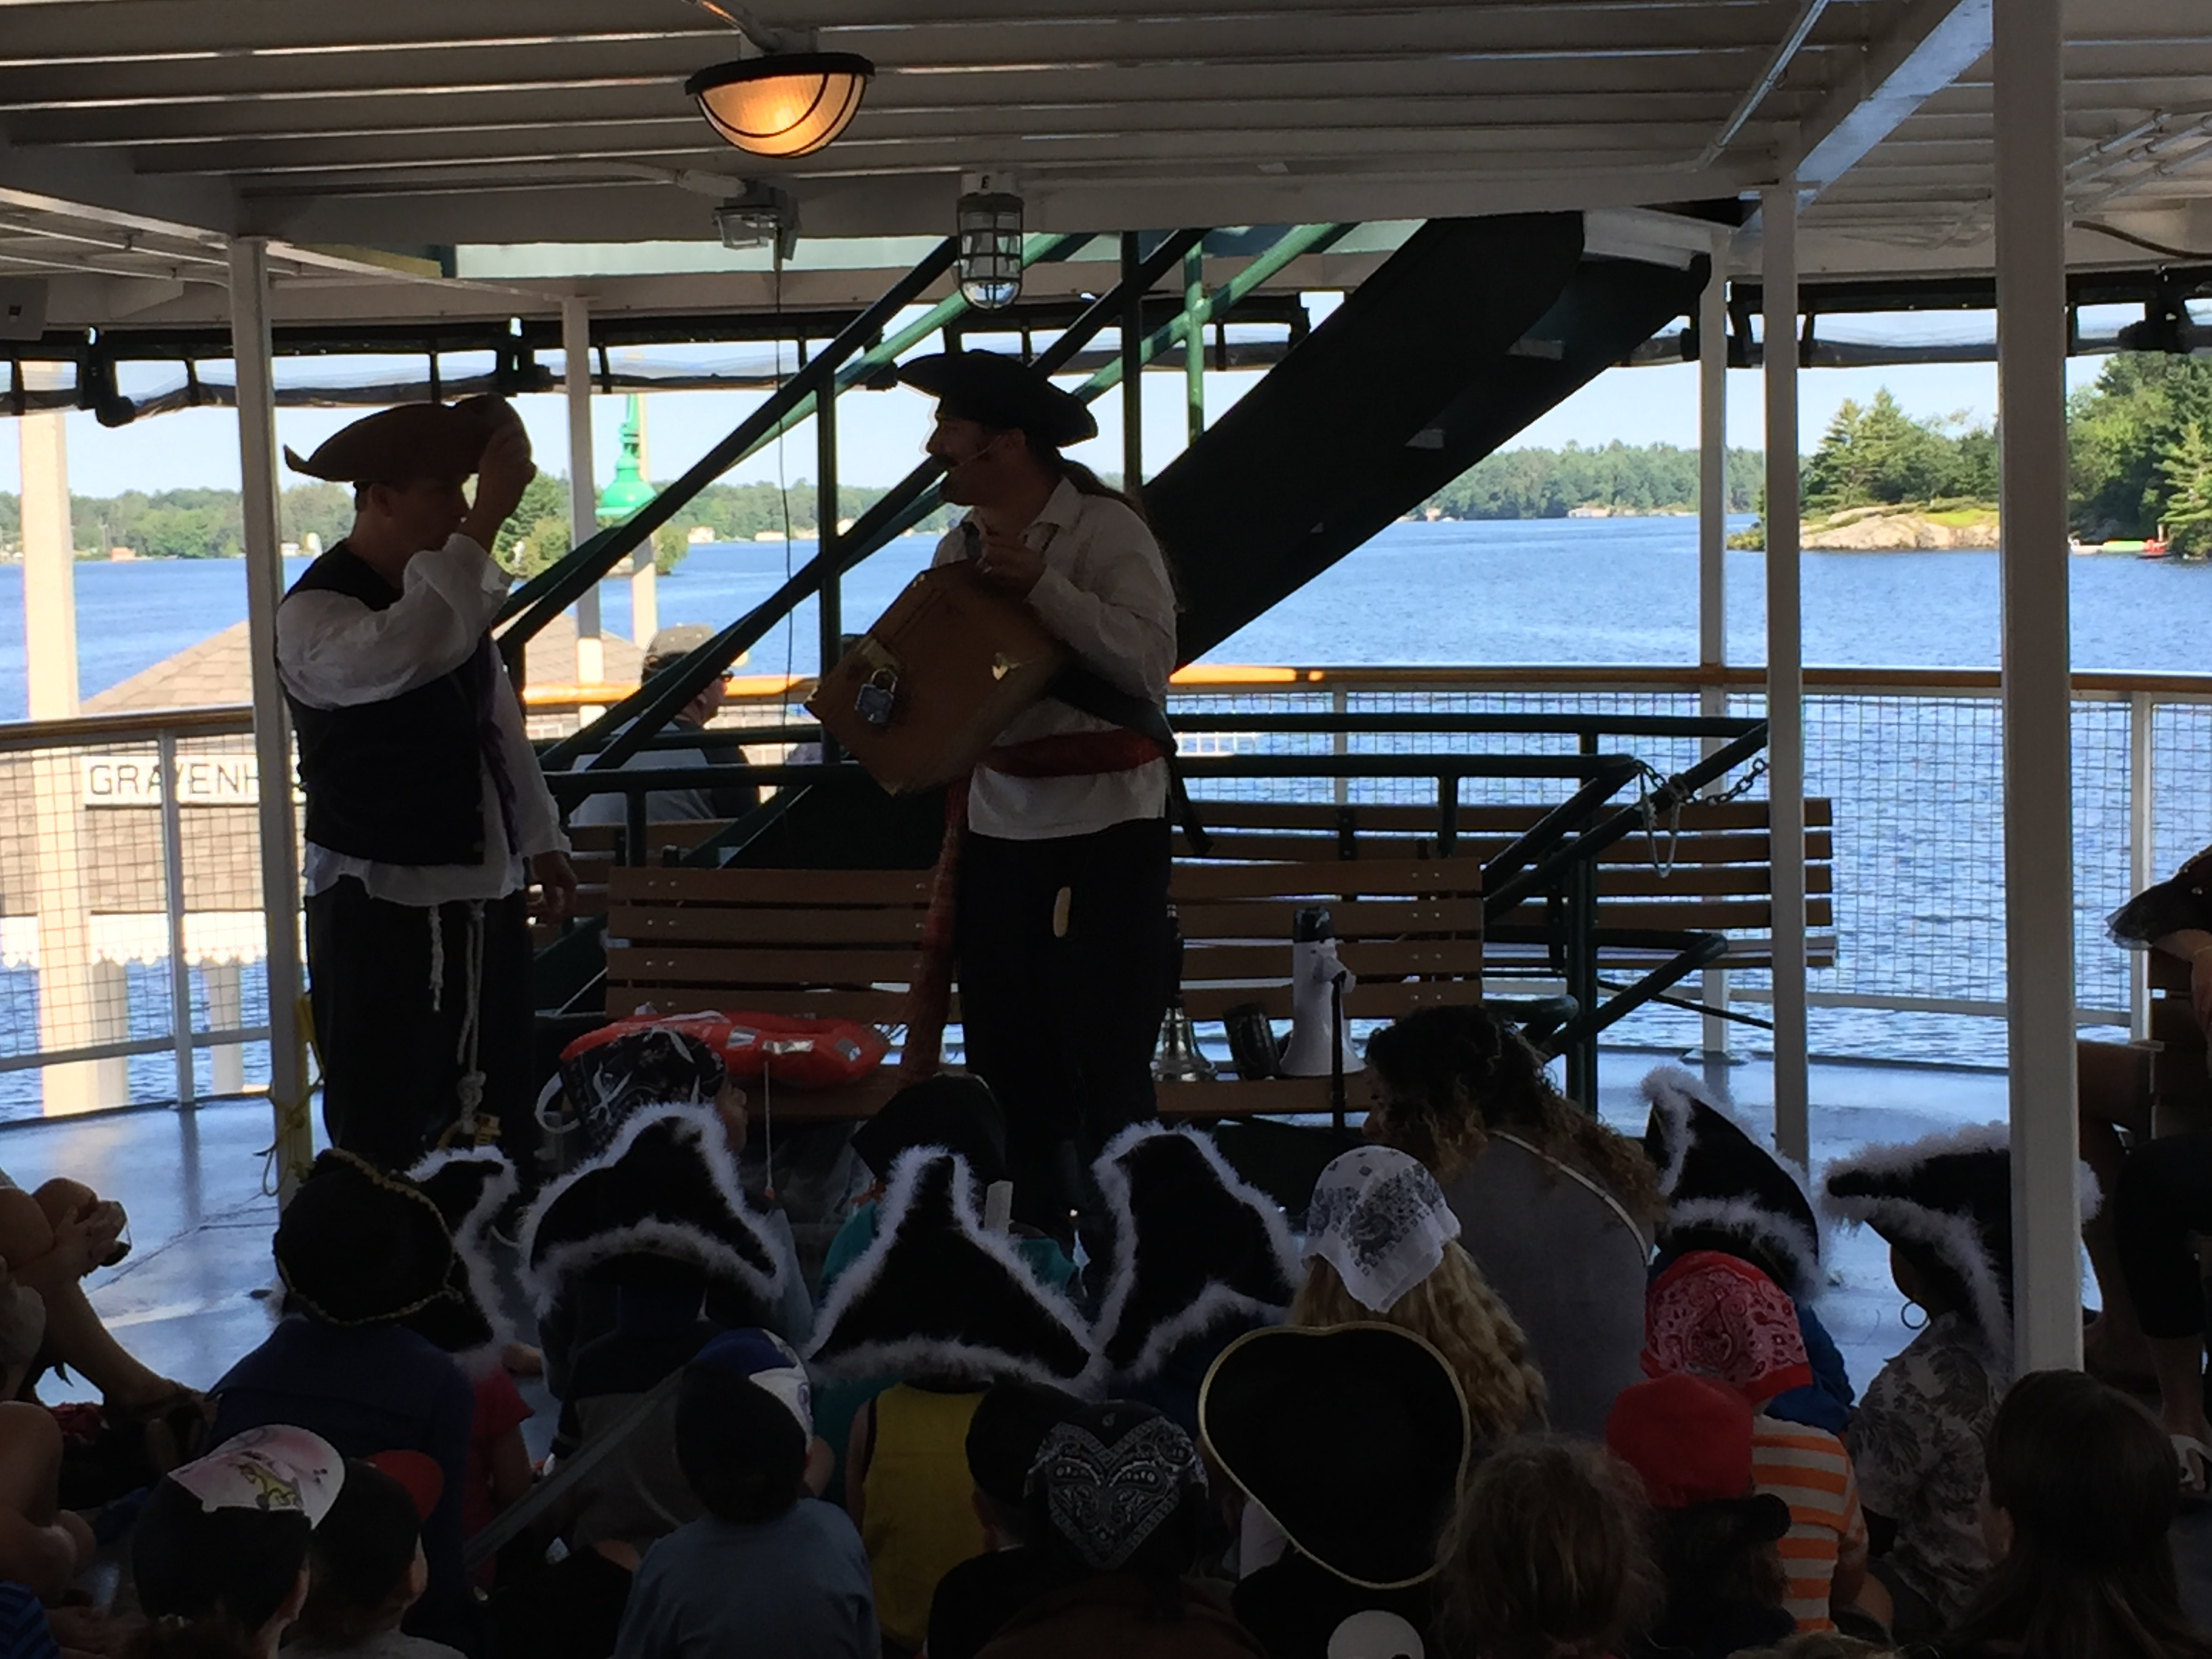 Pirate magician, magic show, pirate cruise, gravenhurst Ontario, Ontario pirate,